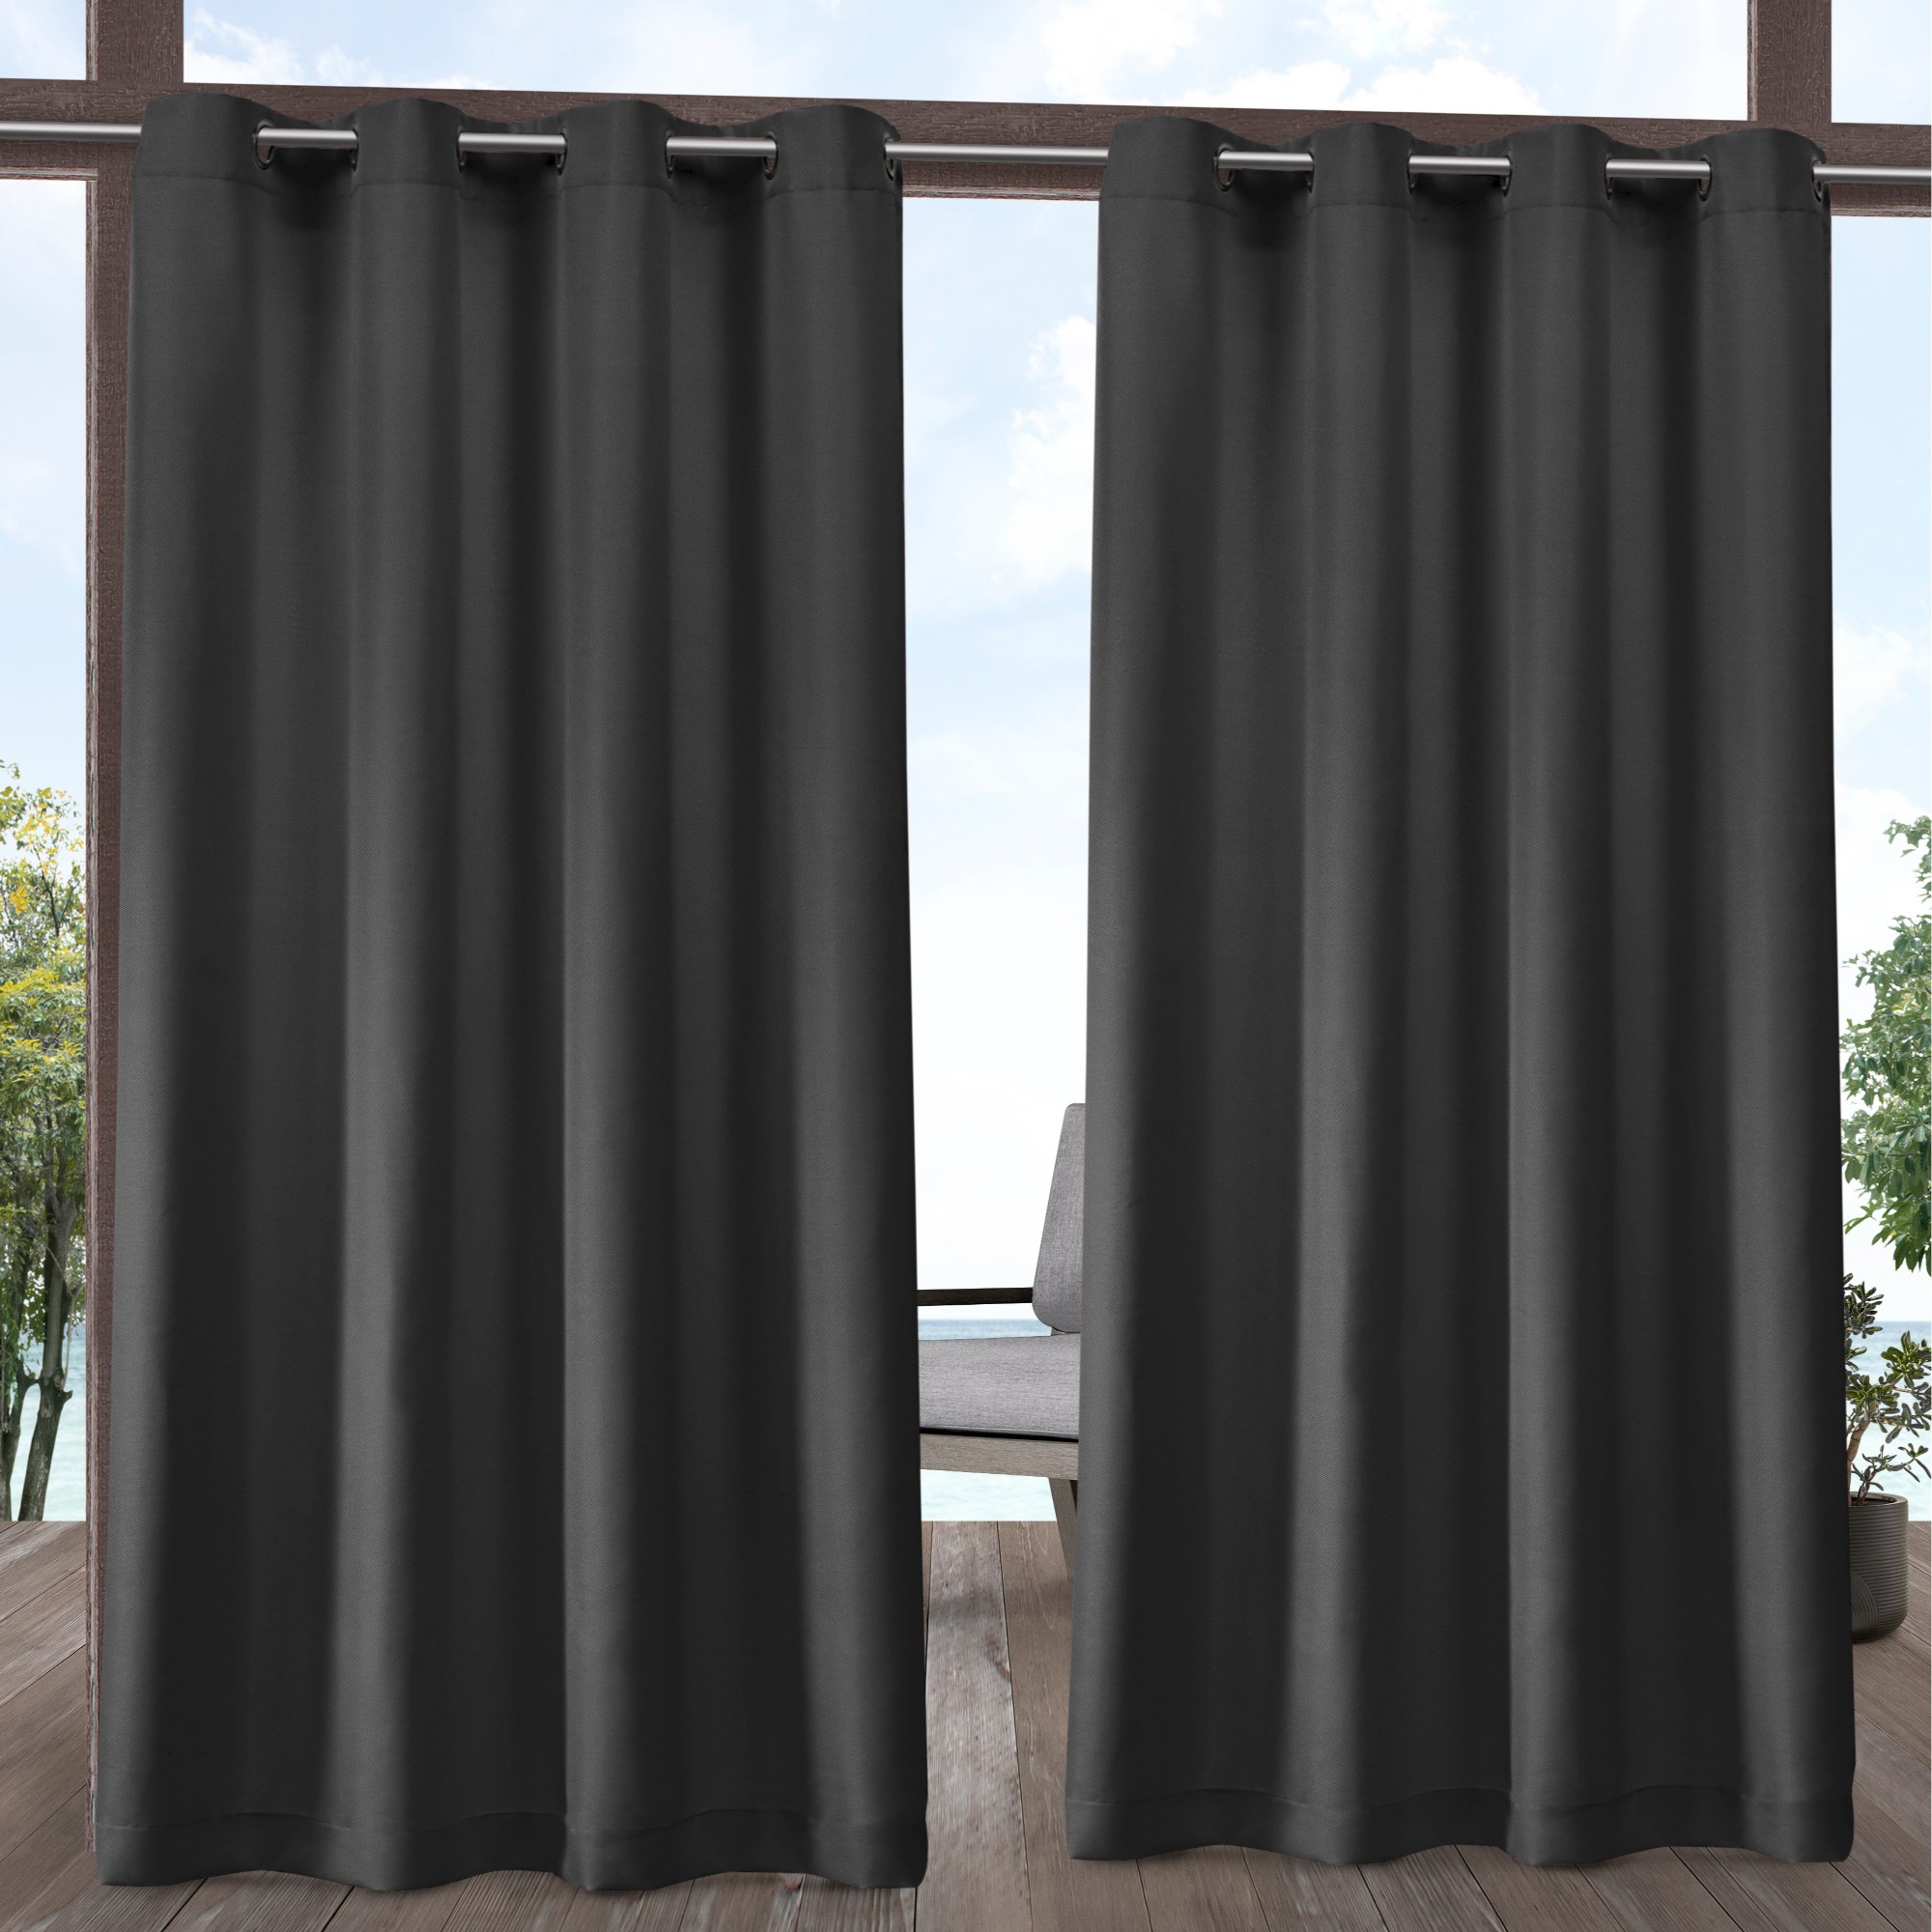 Exclusive Home Curtains 2 Pack Indoor/Outdoor Solid Cabana Grommet Top Curtain Panels